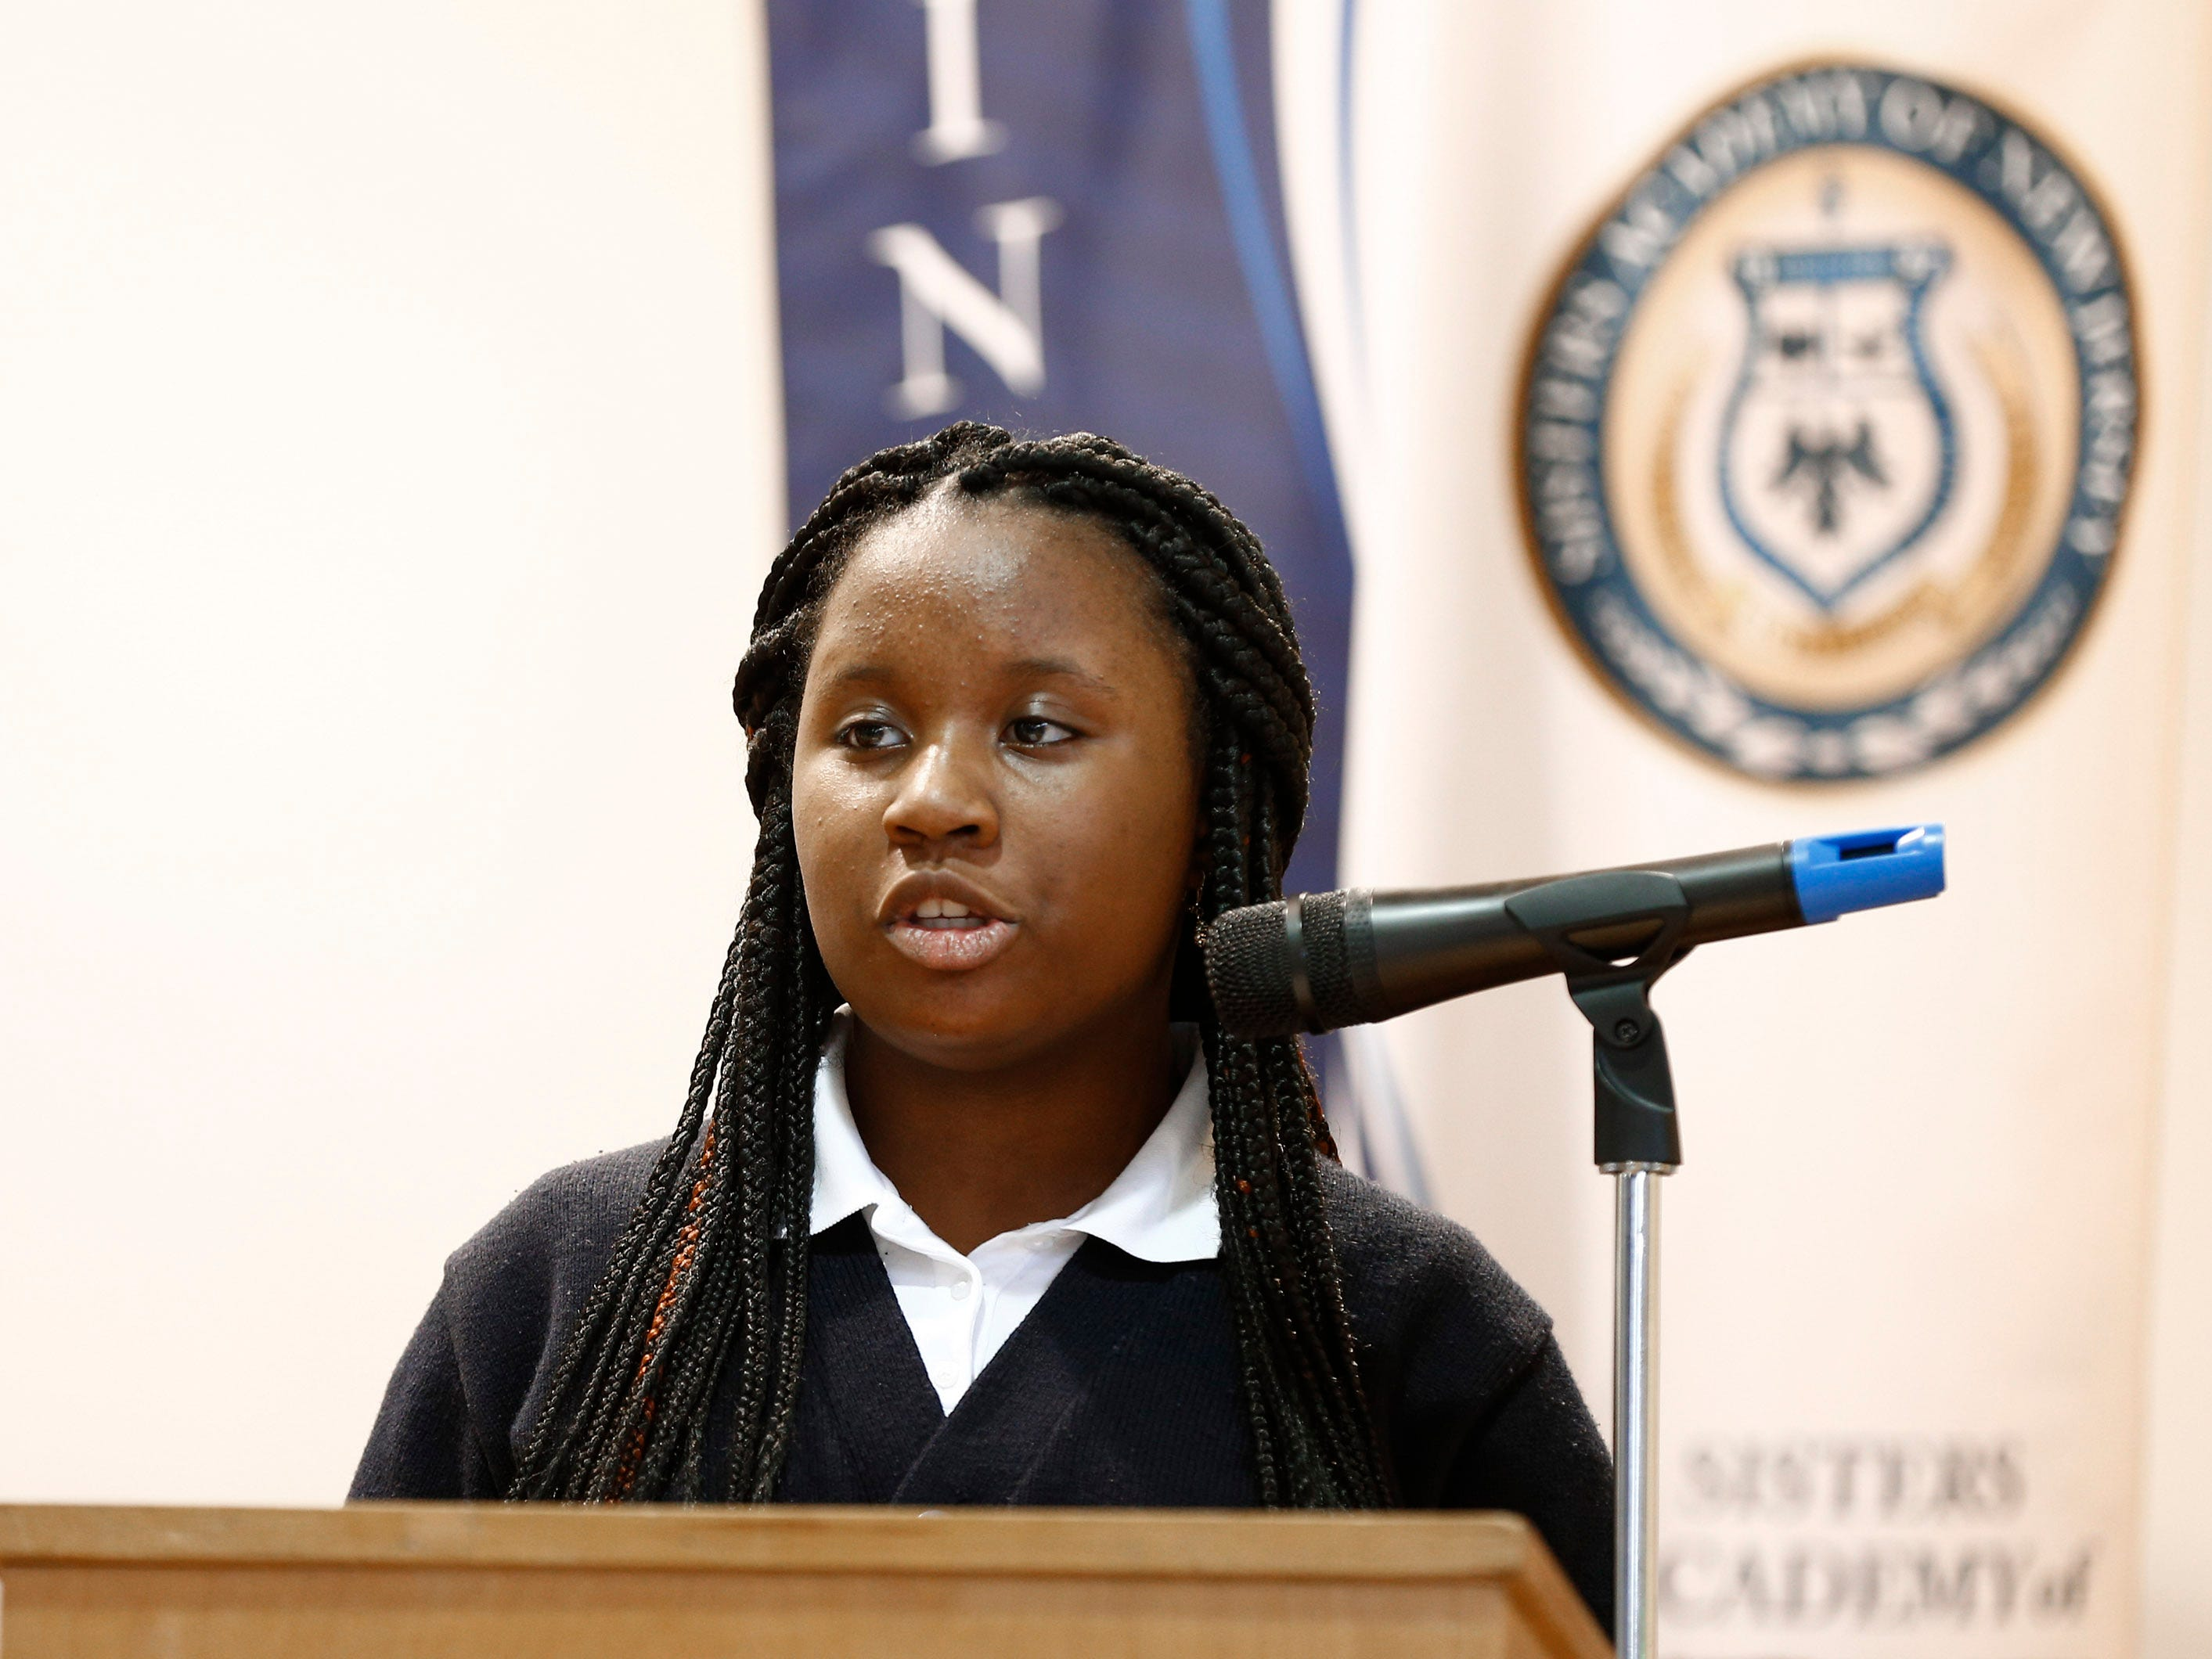 Sisters Academy 8th grader Chrismonde Napoleon performs her core knowledge speech during the 8th Annual Miller Speaking Contest at the Asbury Park school Thursday, March 14, 2019.